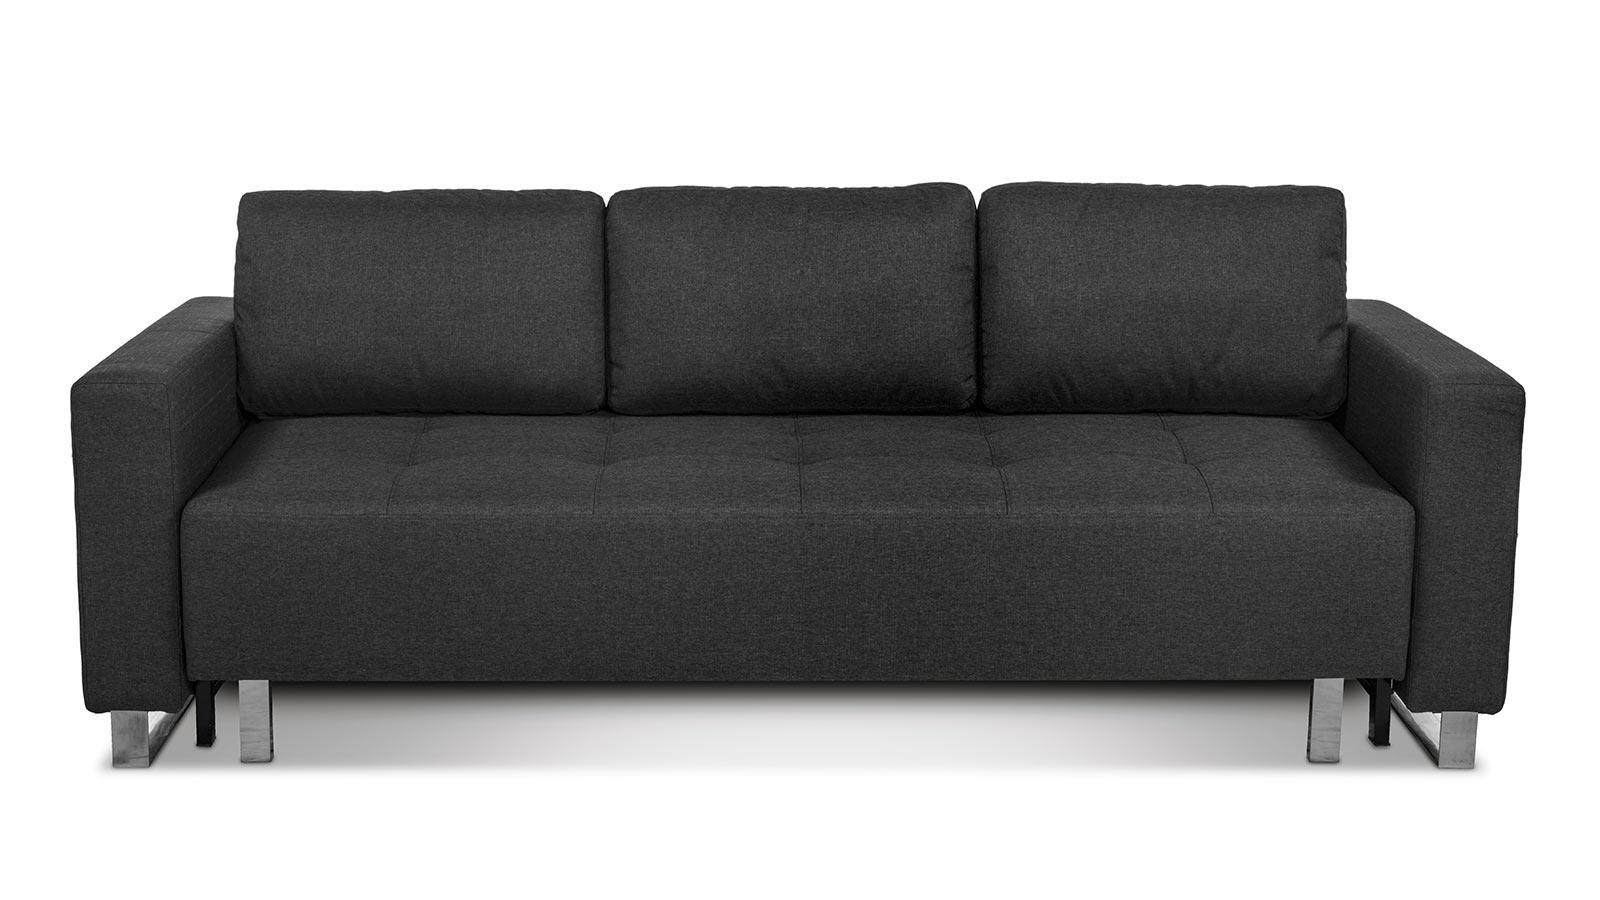 Affordable Sofa Beds Fabulous As Tufted Sofa On Sofa Cushions Pertaining To Affordable Tufted Sofa (Image 2 of 20)